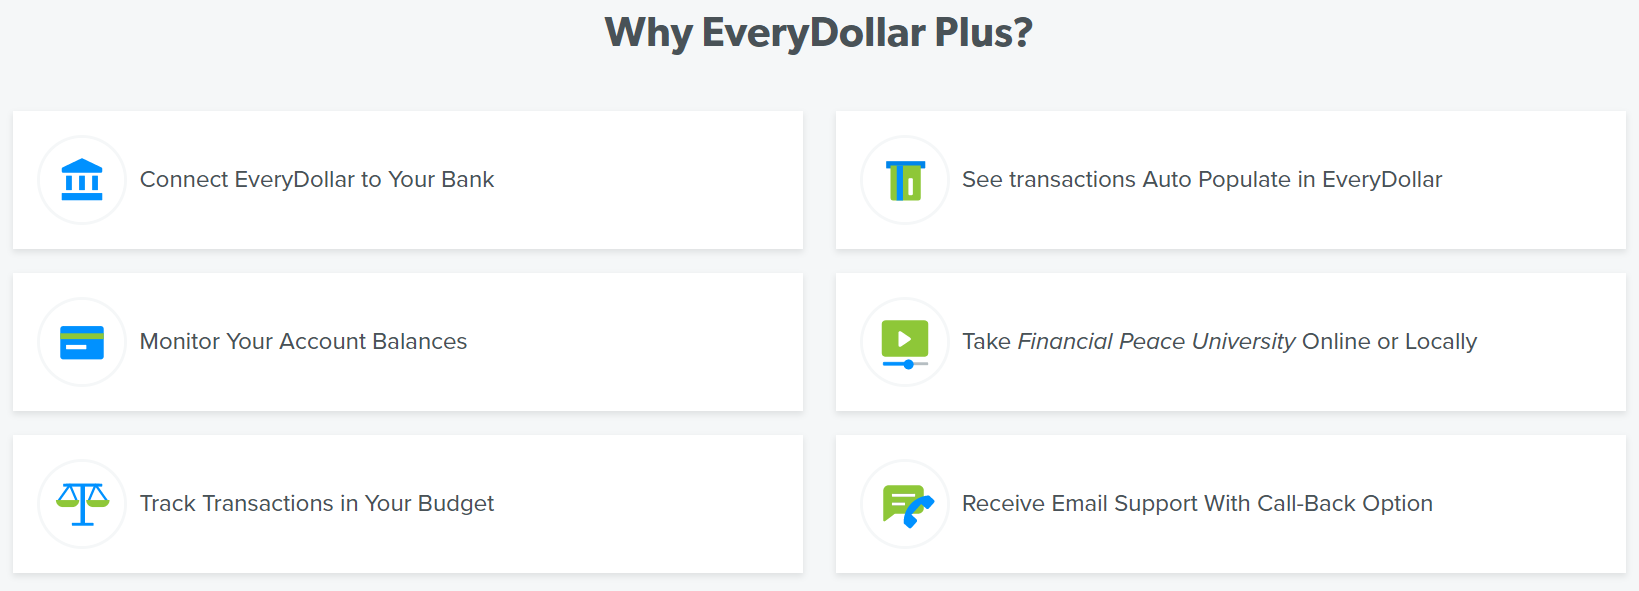 Image of EveryDollar Plus and what it allows you to do for being a paid member.